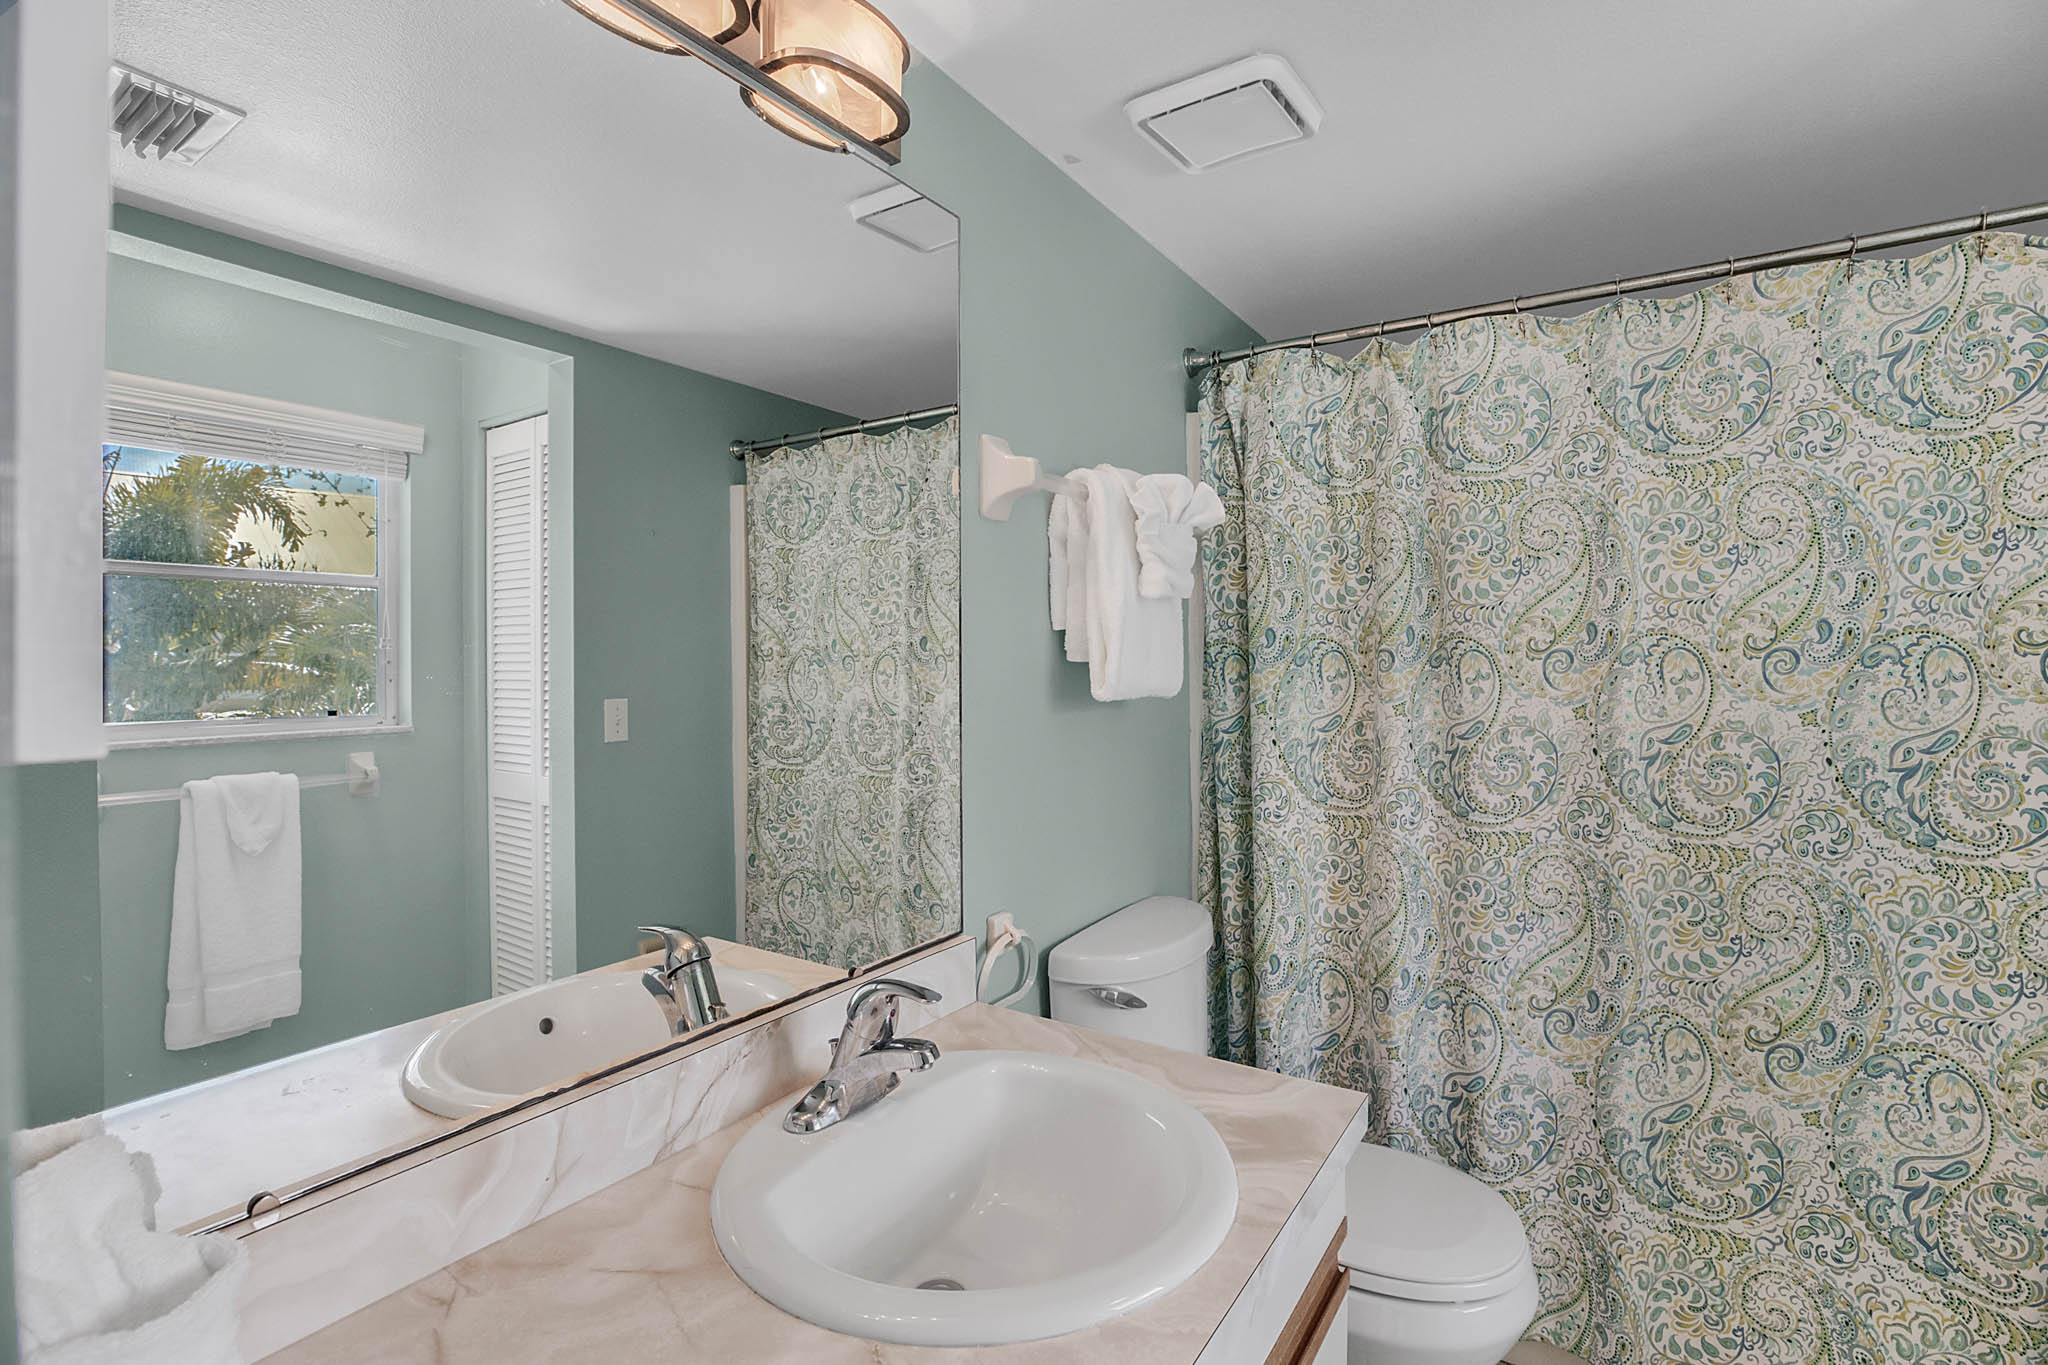 403-N-Bay-Blvd.-Anna-Maria--FL-34216--21--Main-Bath.jpg